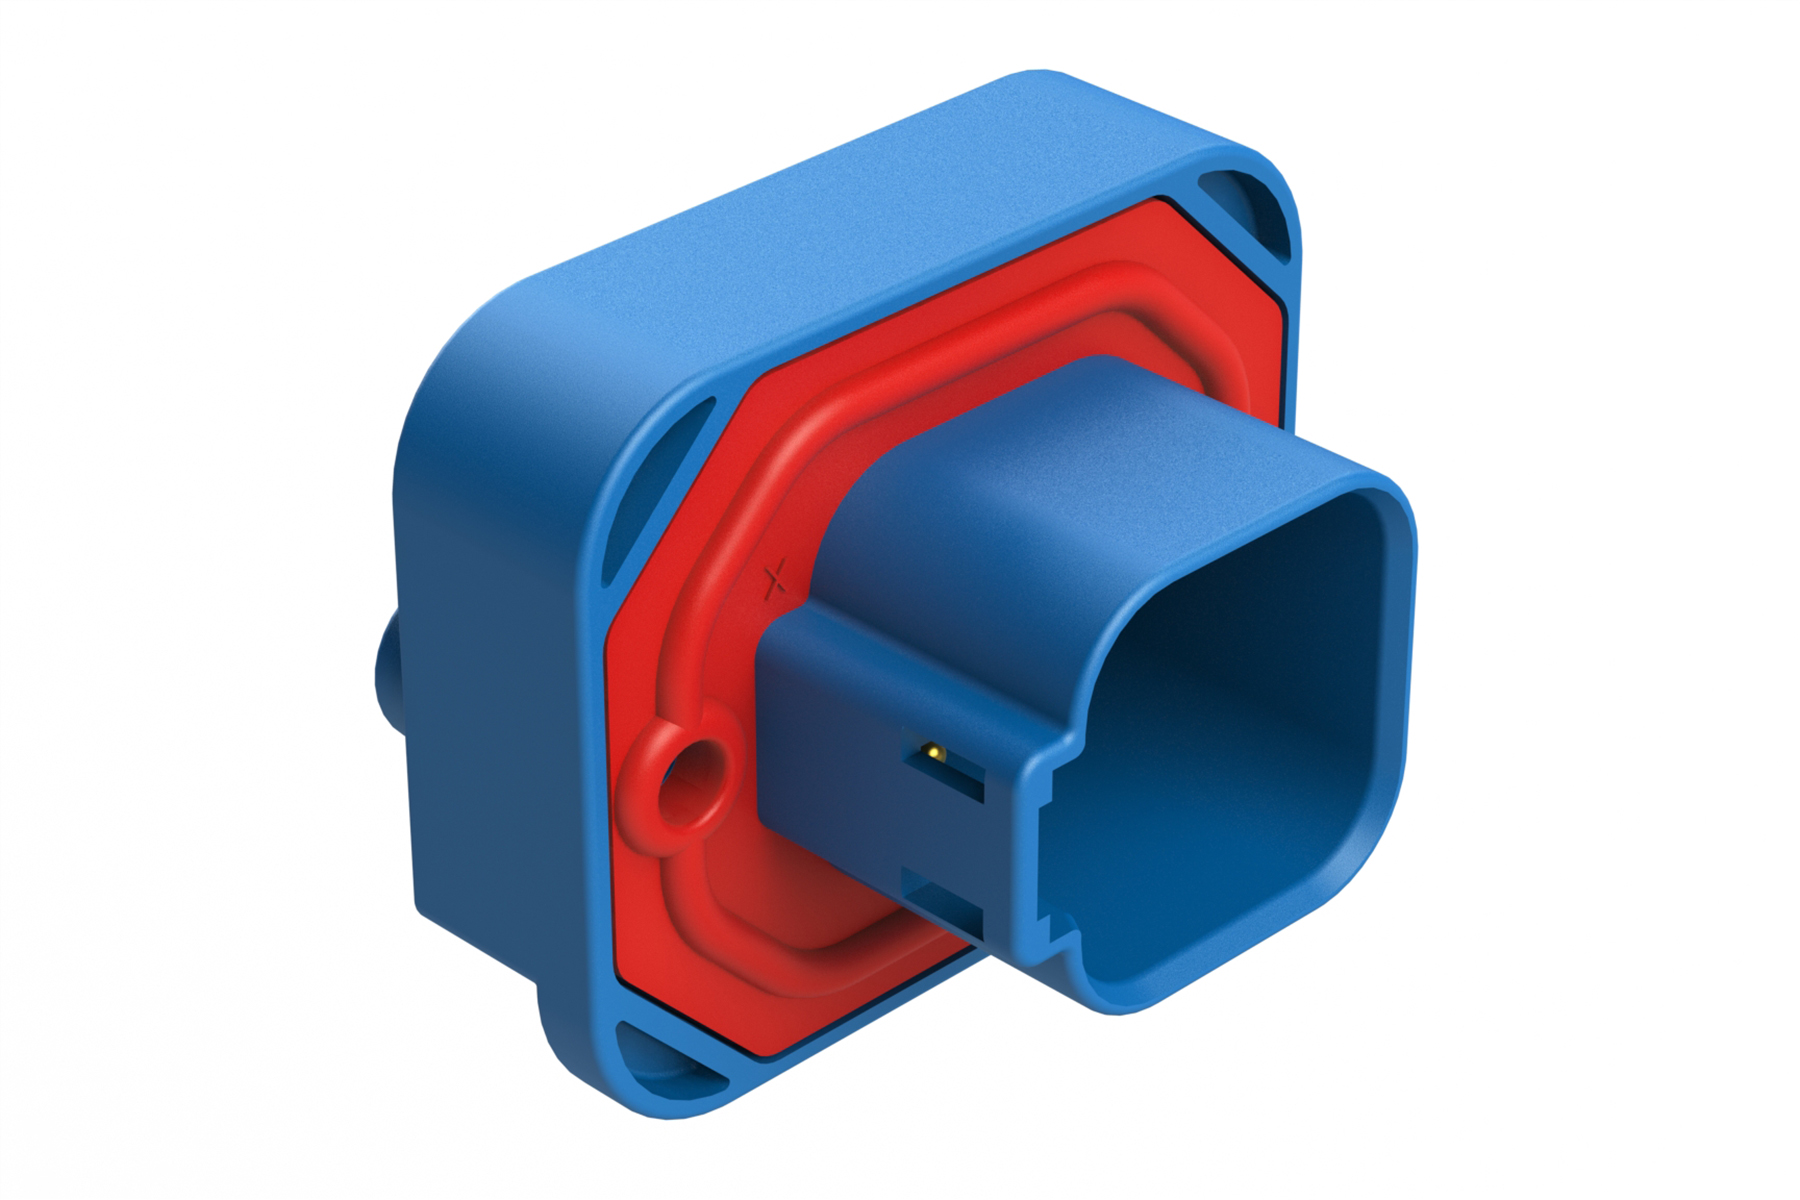 AT15-6P2-BM01BLU  6 Position Straight Flange Mount PCB Receptacle, Blue, Gold Plated Contacts Included